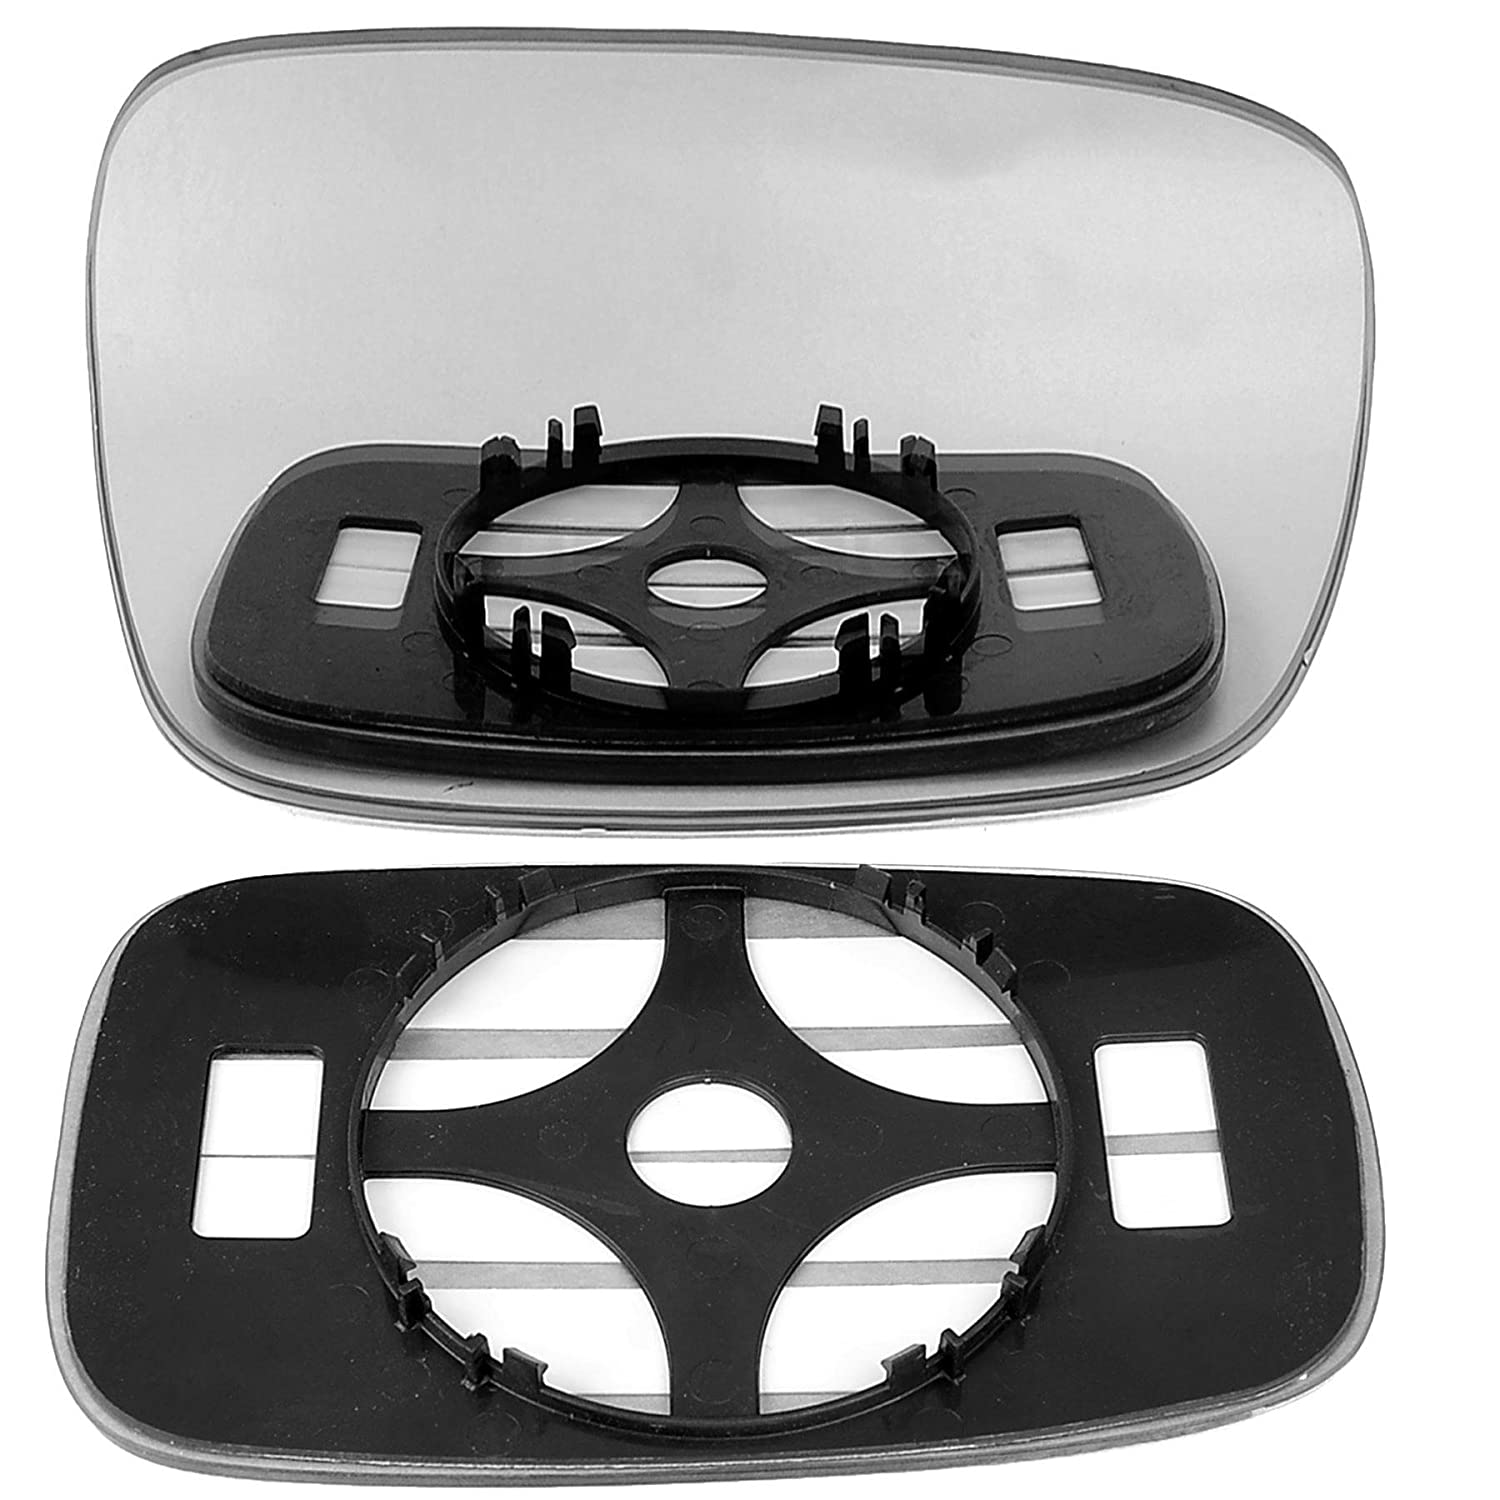 driver wing door clip mirror glass vex # ReCli//H01-209 042//590 Right driver side